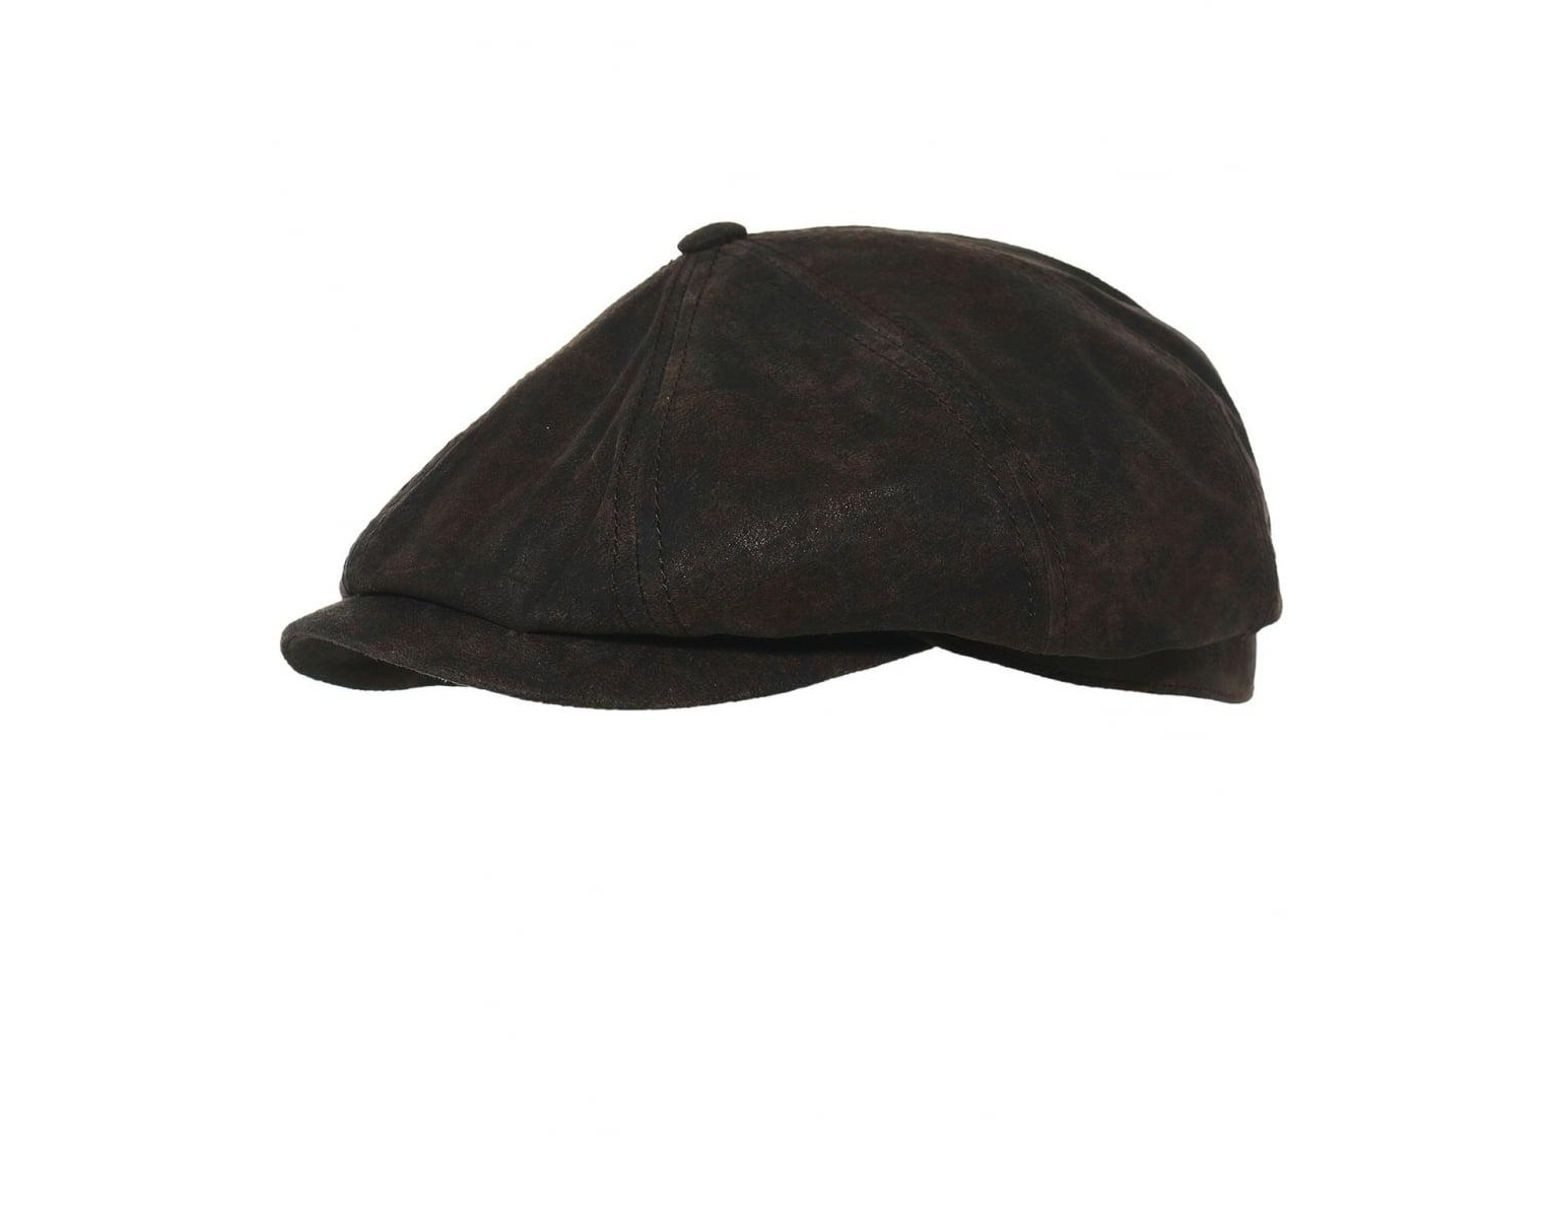 3e99ec13e3dd16 Stetson Leather Hatteras Newsboy Cap in Brown for Men - Lyst